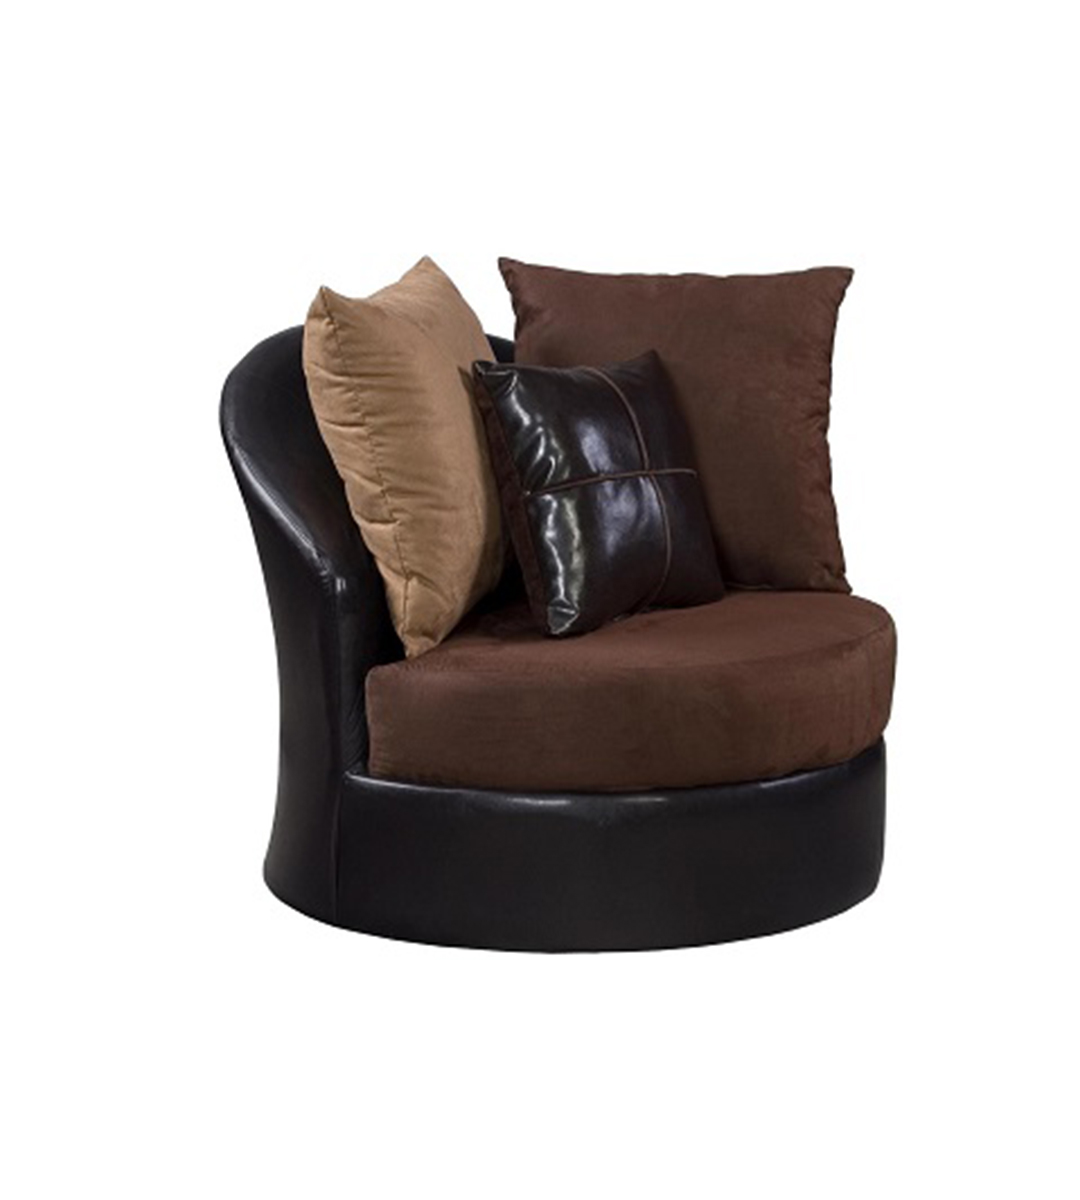 Chelsea Home Willy Chair - Chocolate